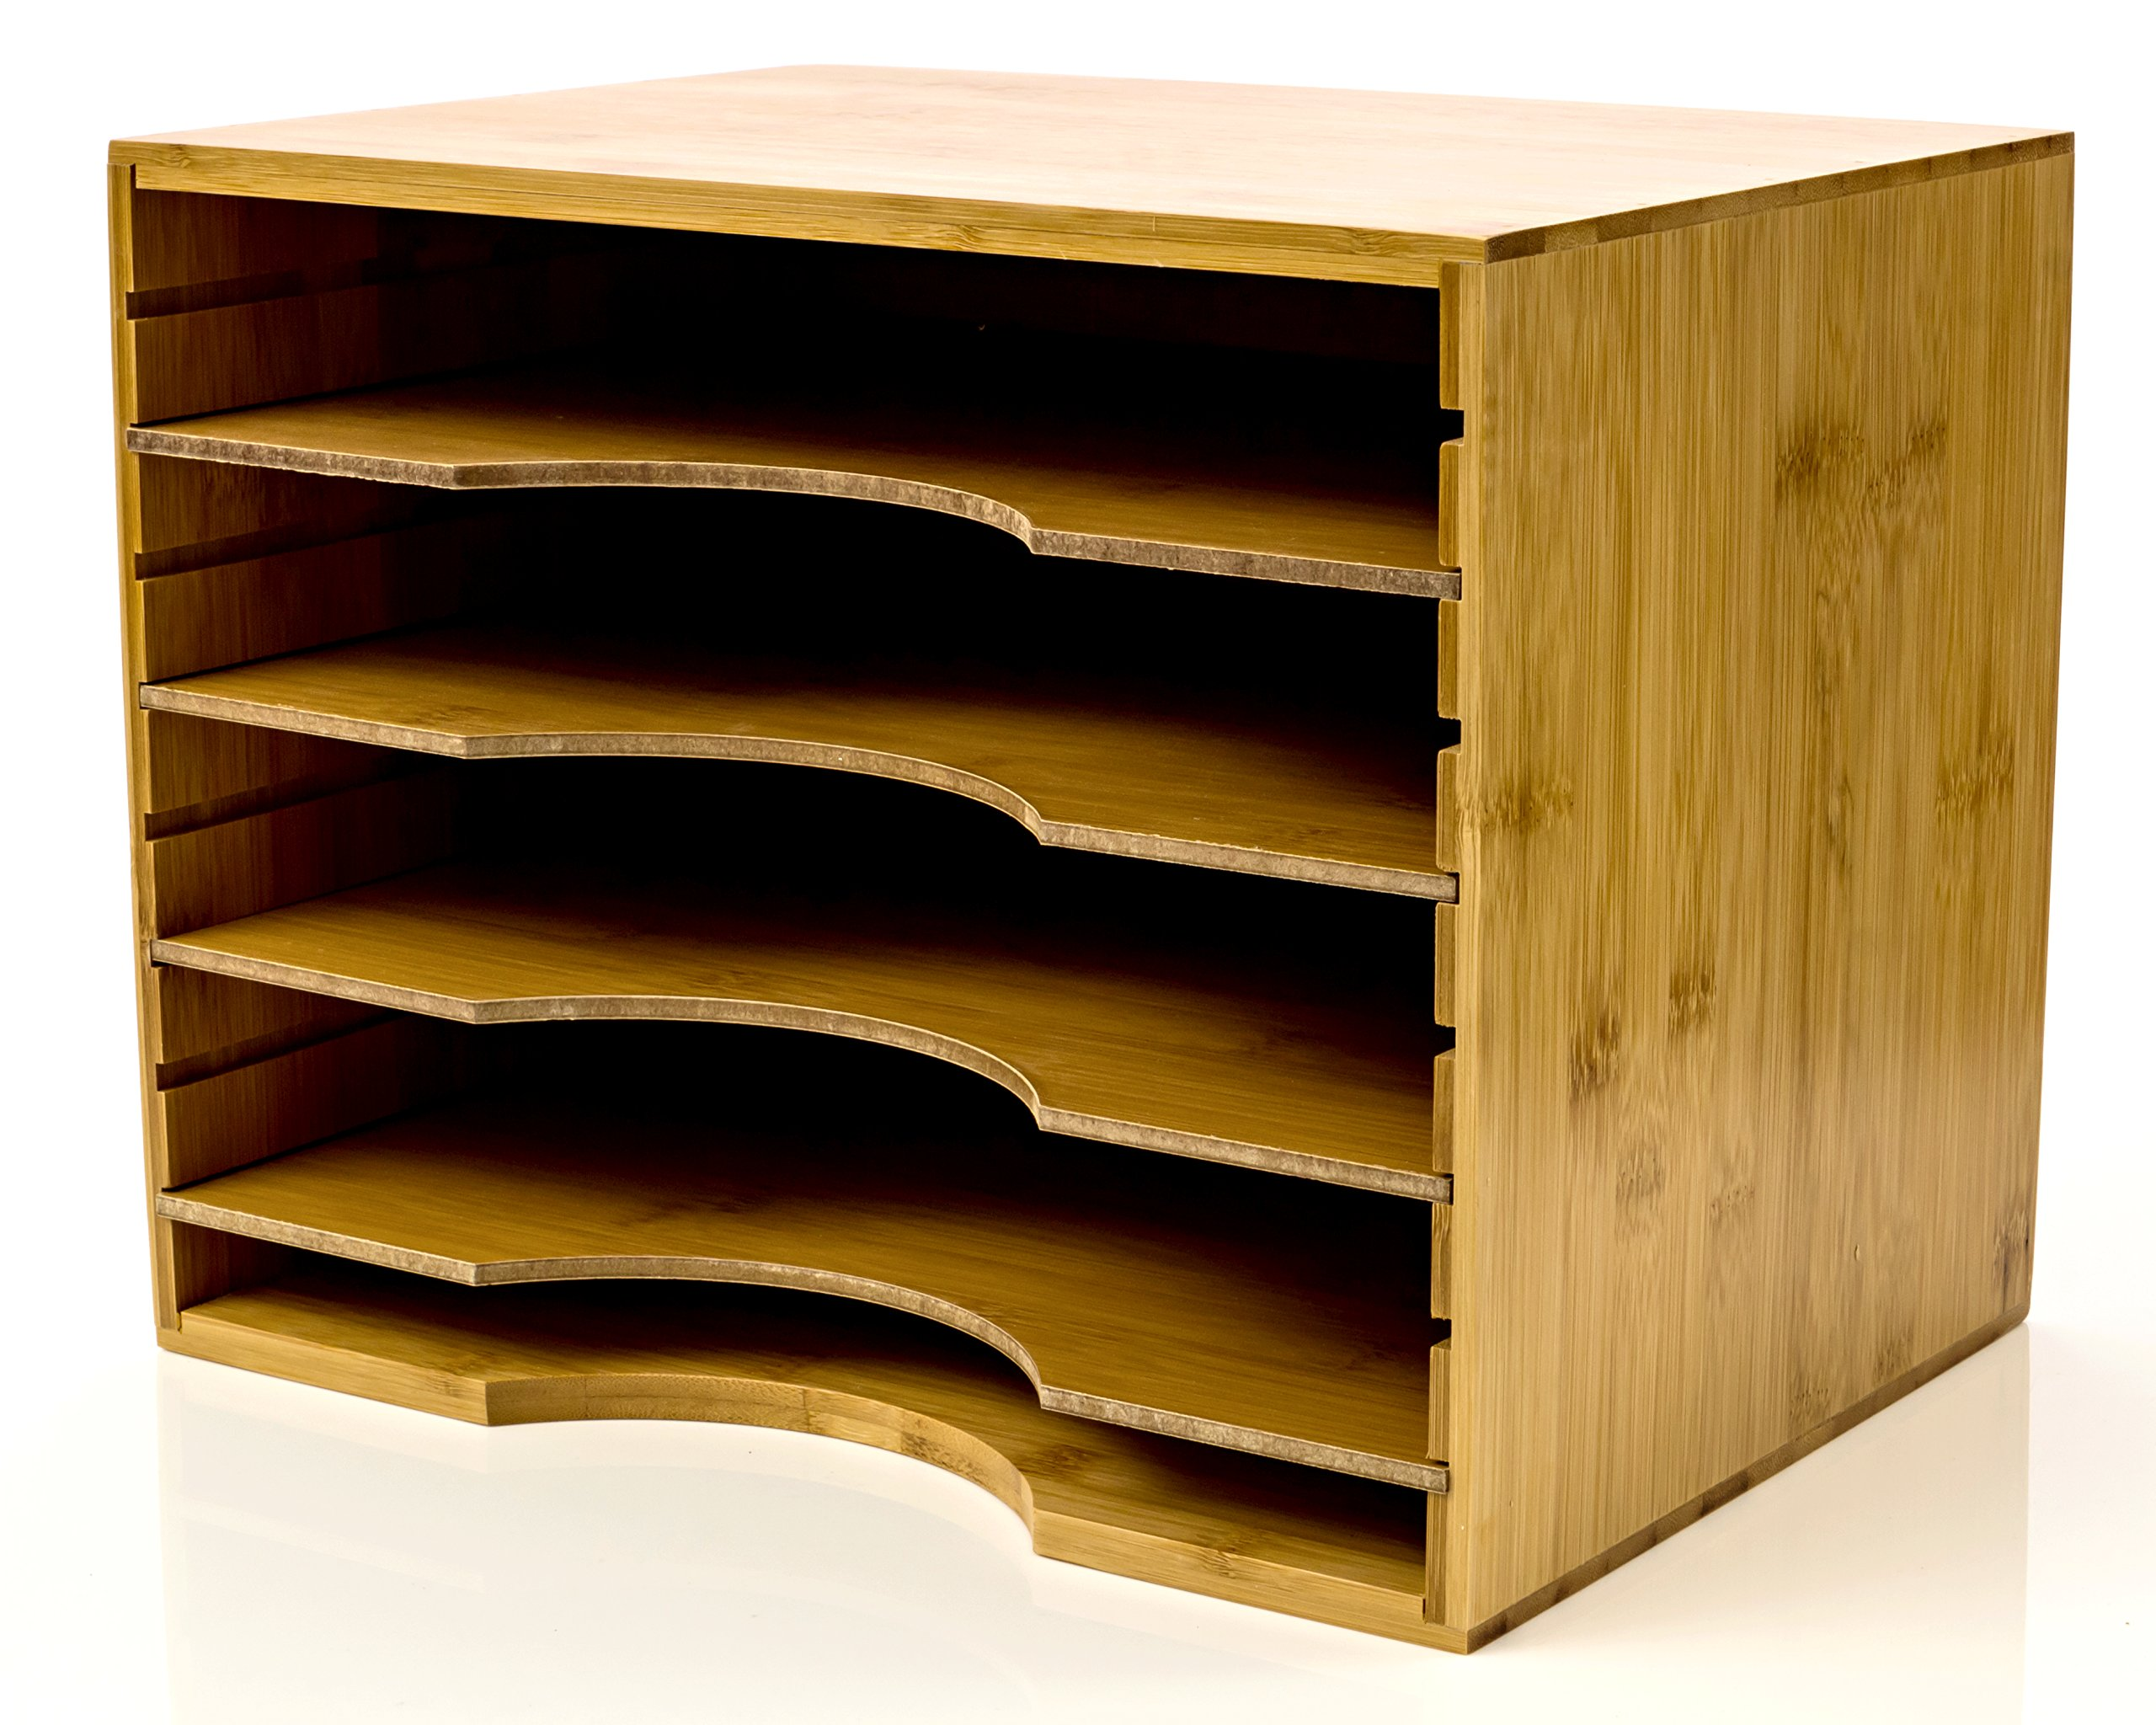 File Organizer Mail sorter, With Four Adjustable Dividers Natural Bamboo wood Color By Intriom Bamboo Collection (File Organizer) by Intriom